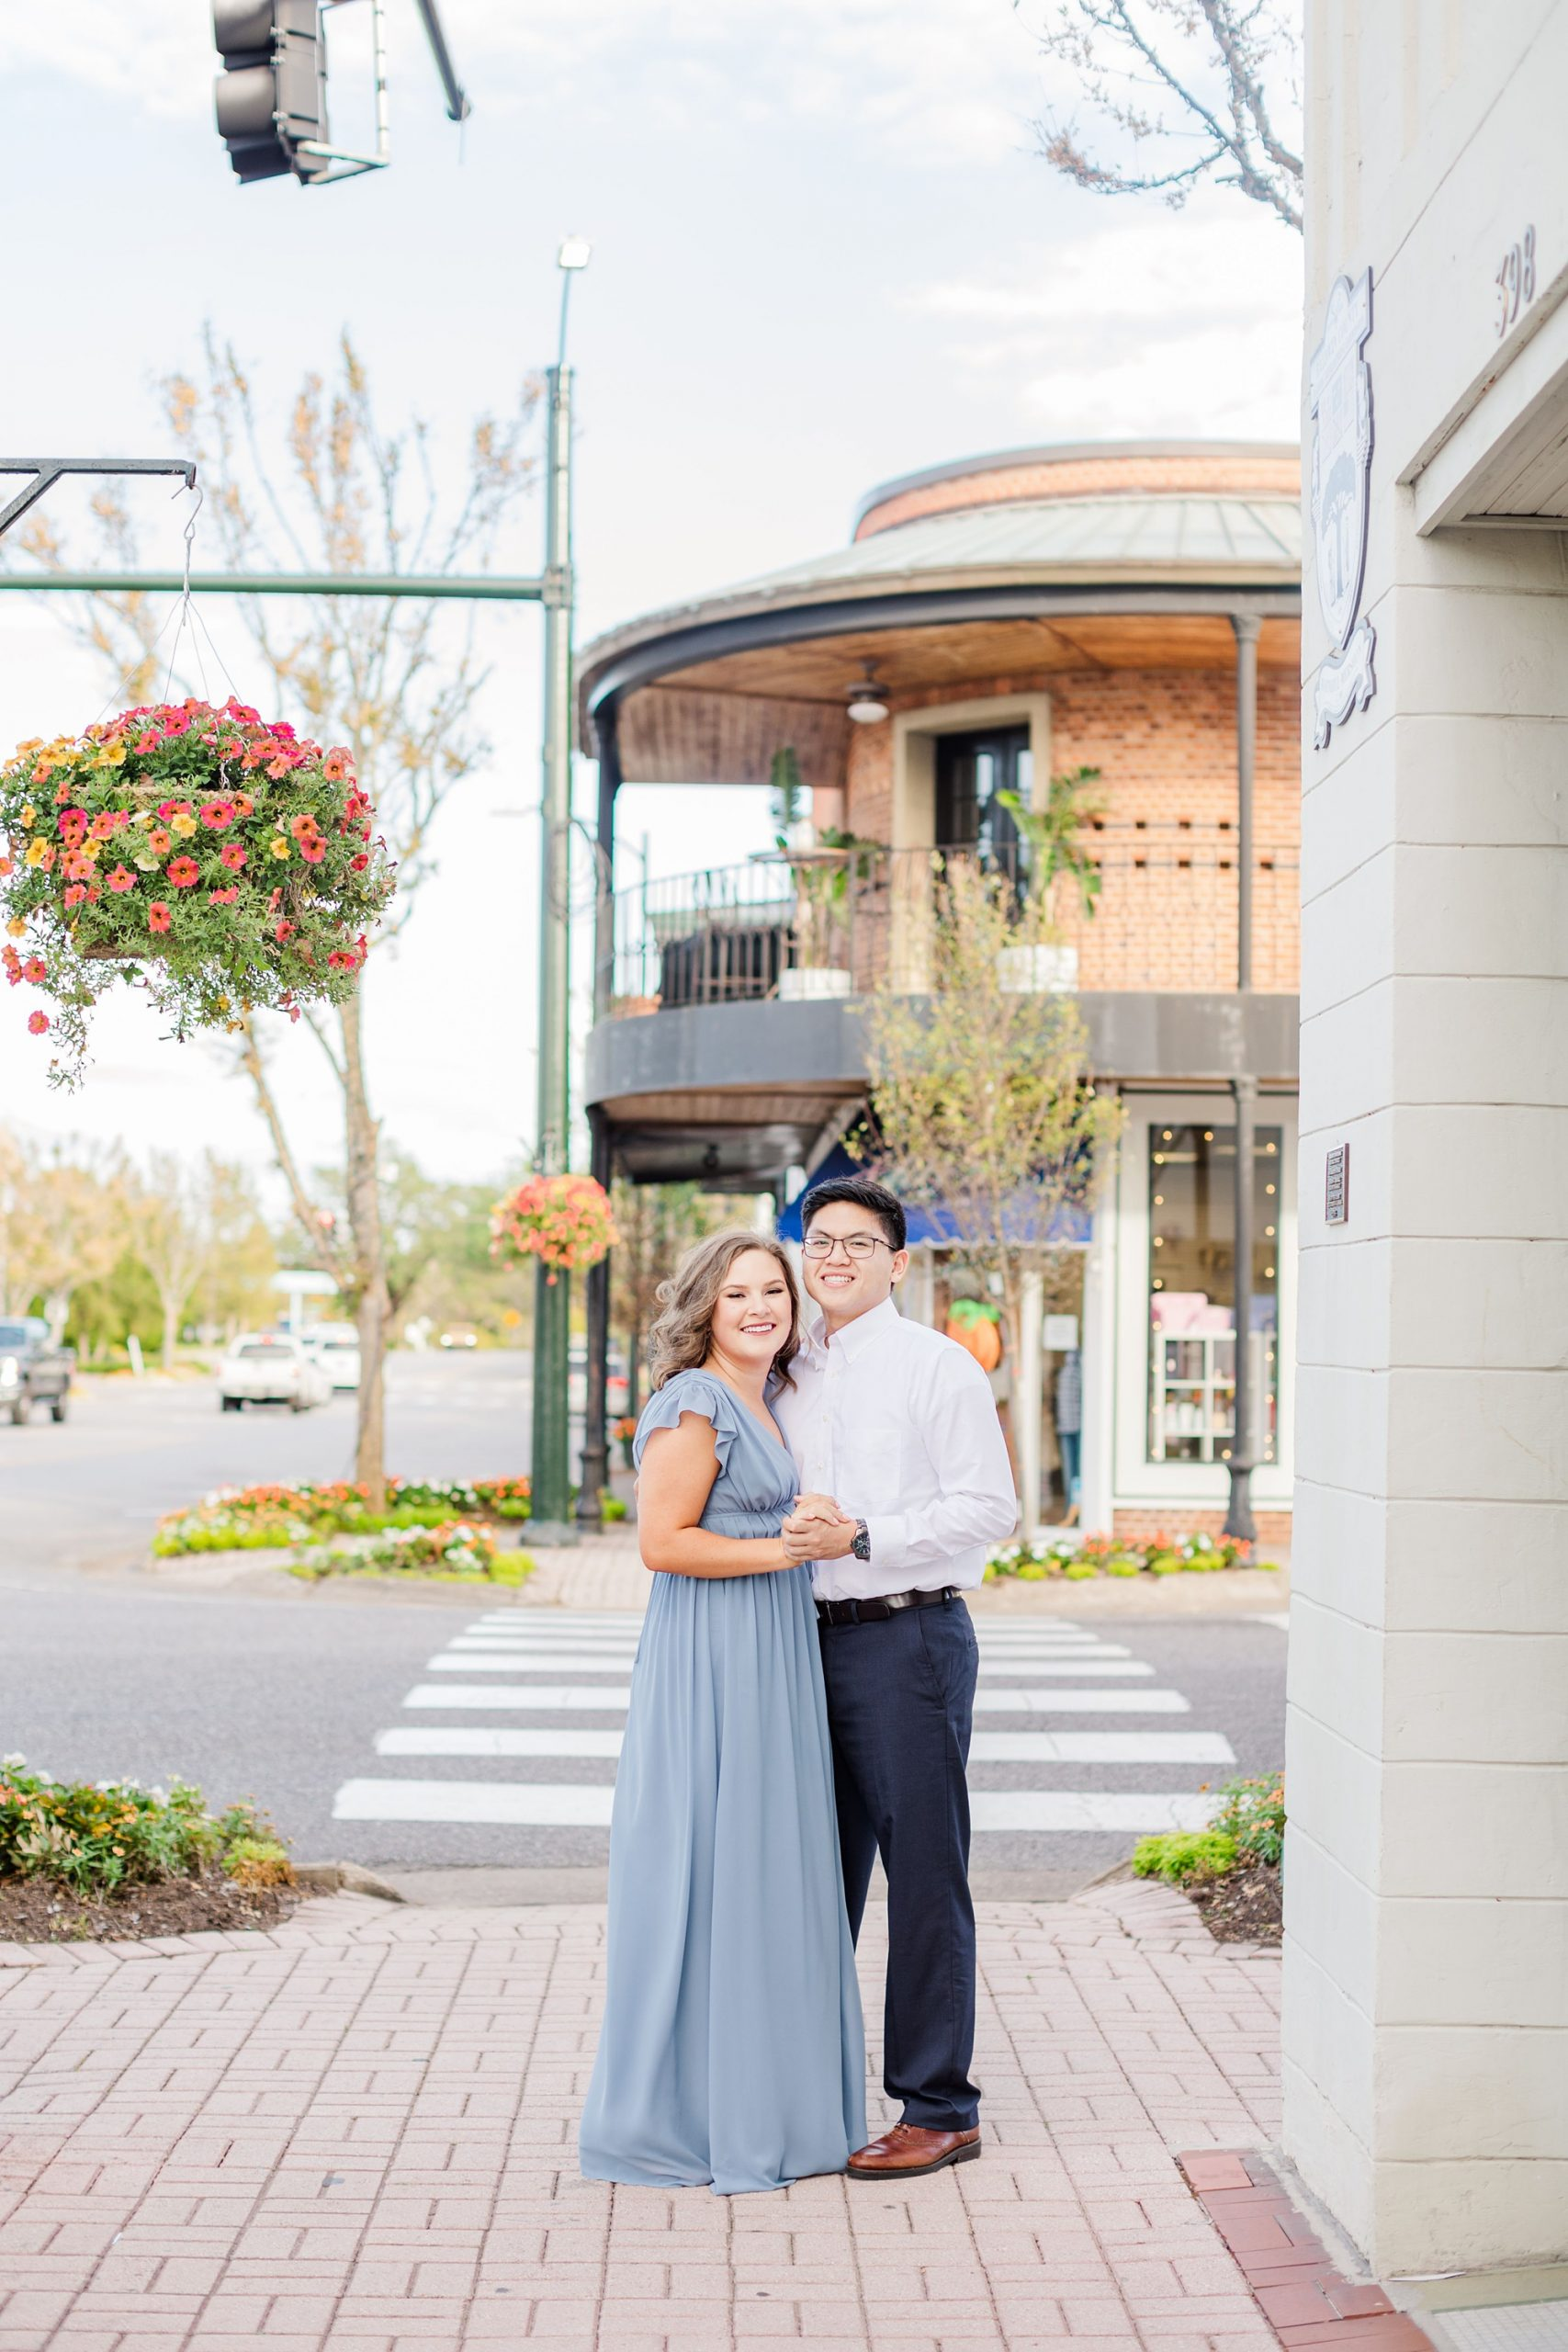 Downtown Fairhope engagement photos of bride and groom